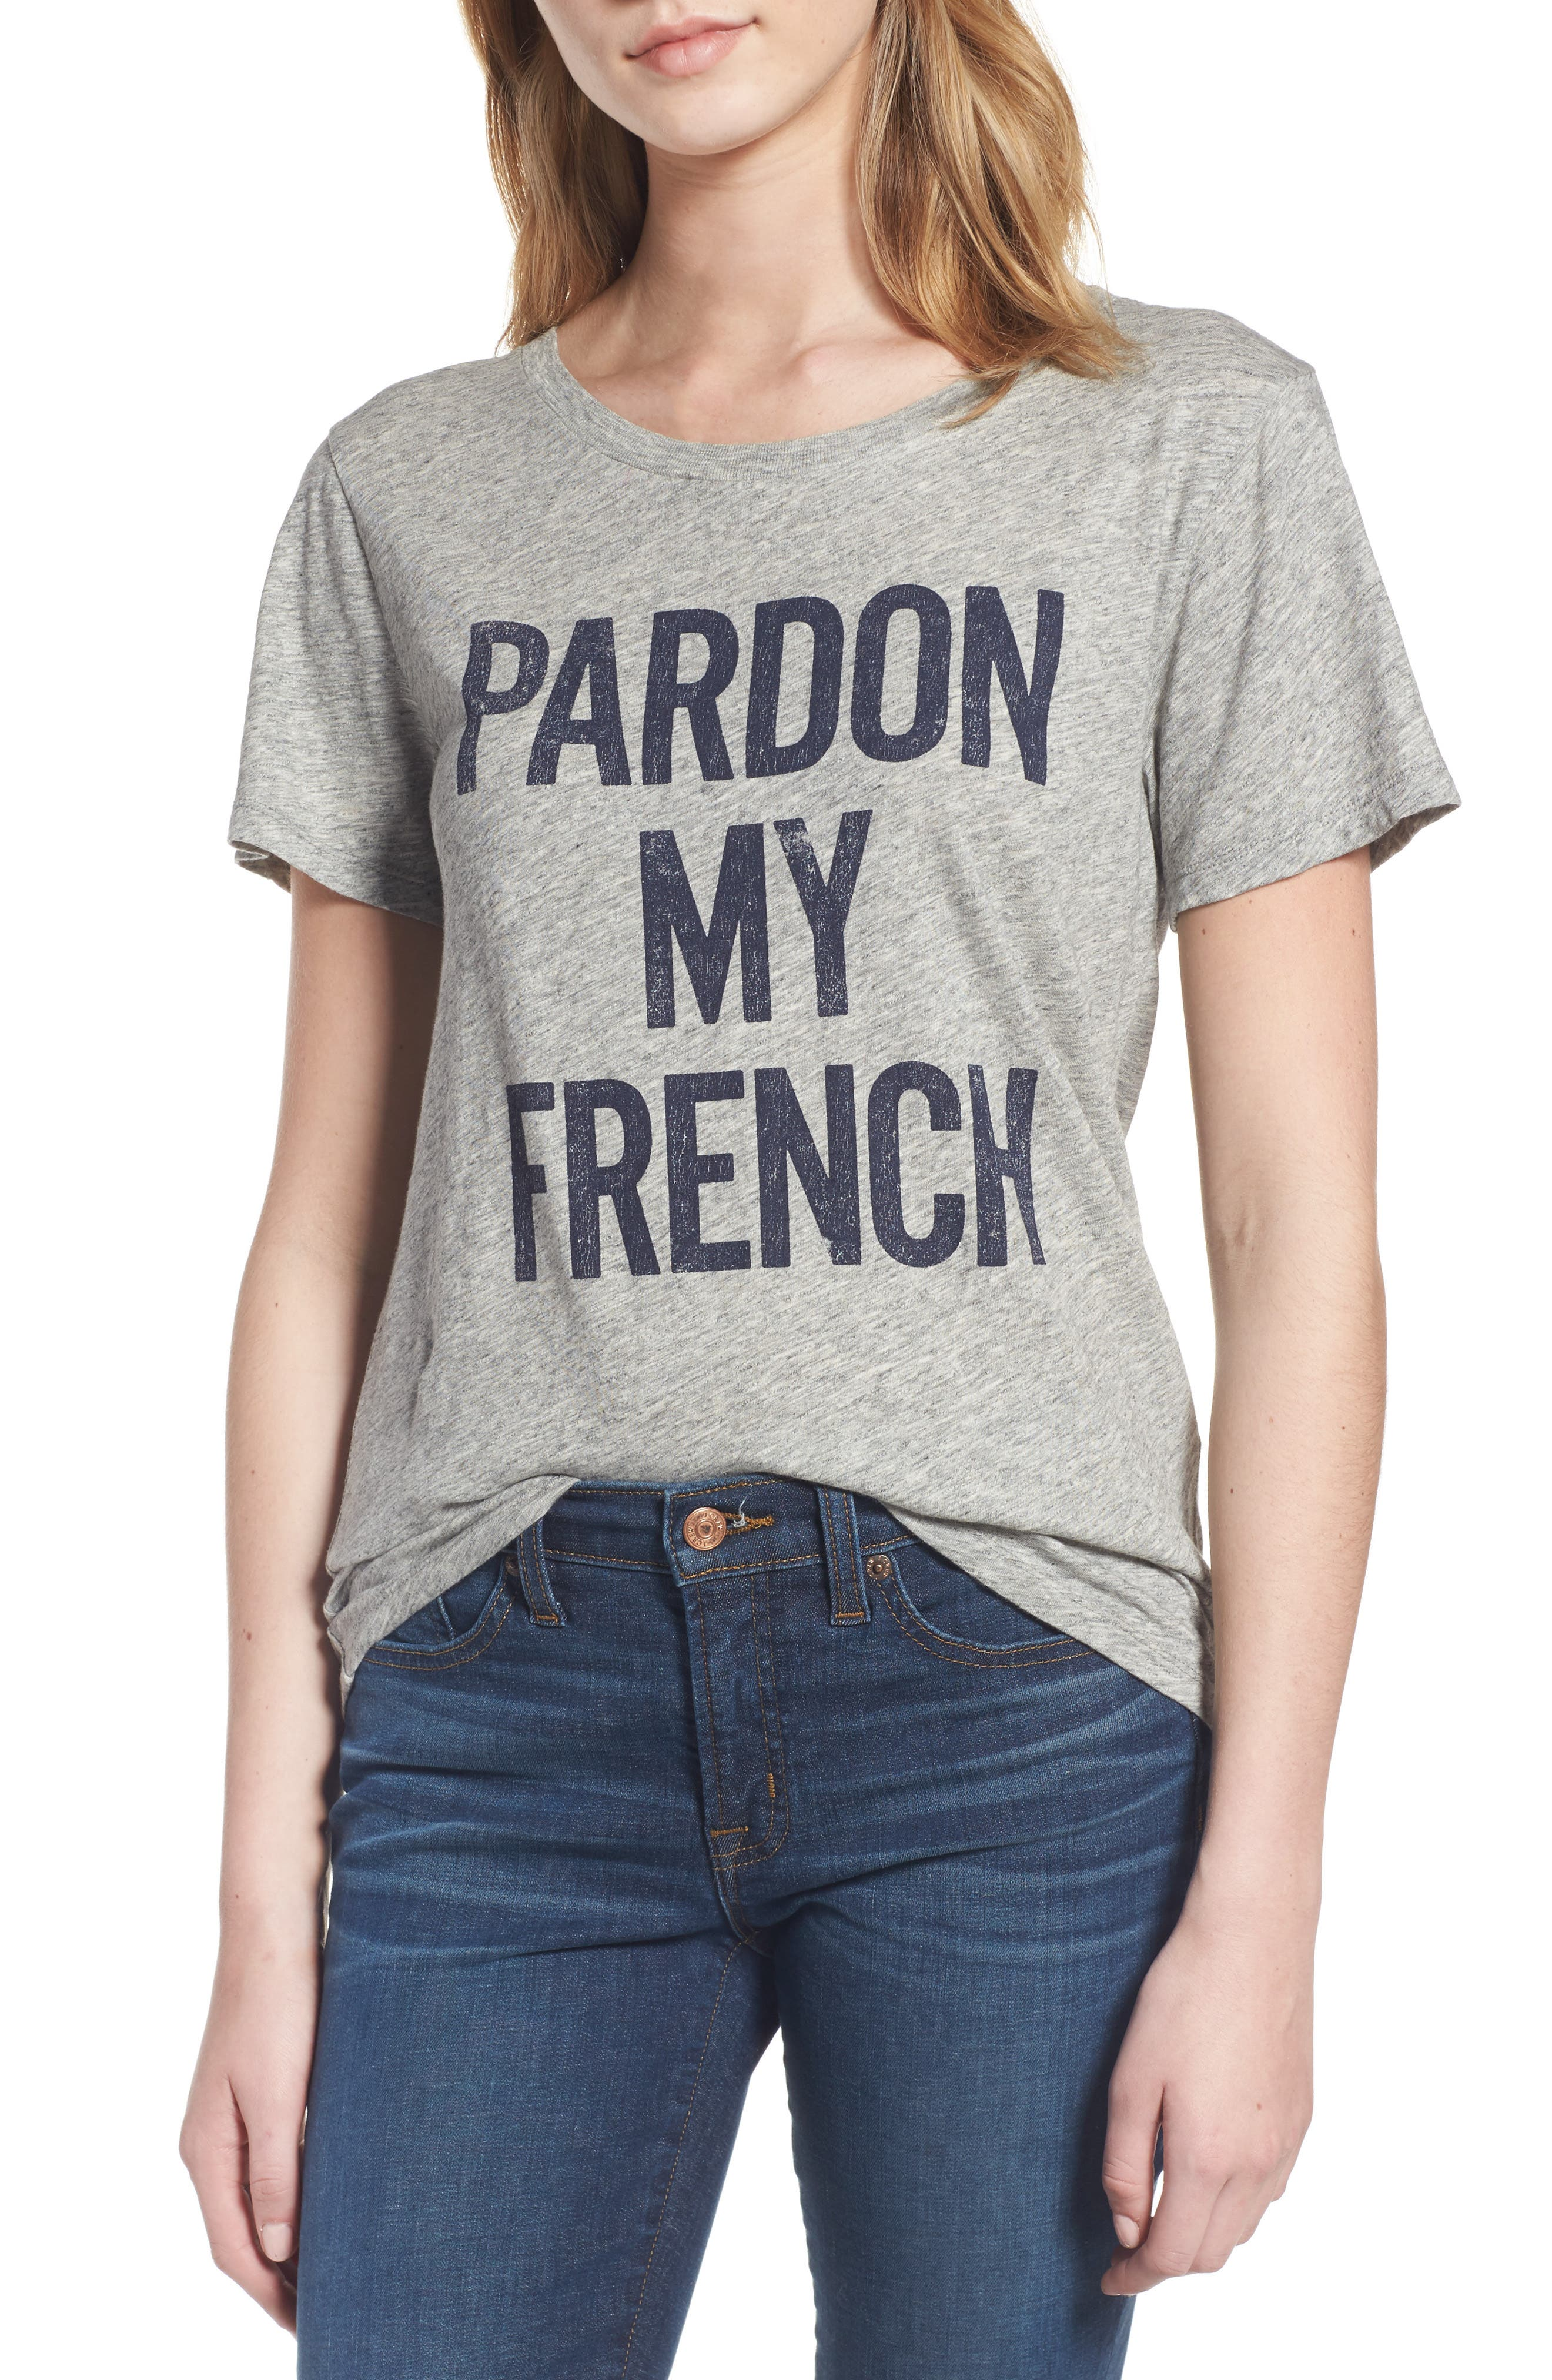 J.Crew Pardon My French Graphic Tee,                             Main thumbnail 1, color,                             Heather Graphite